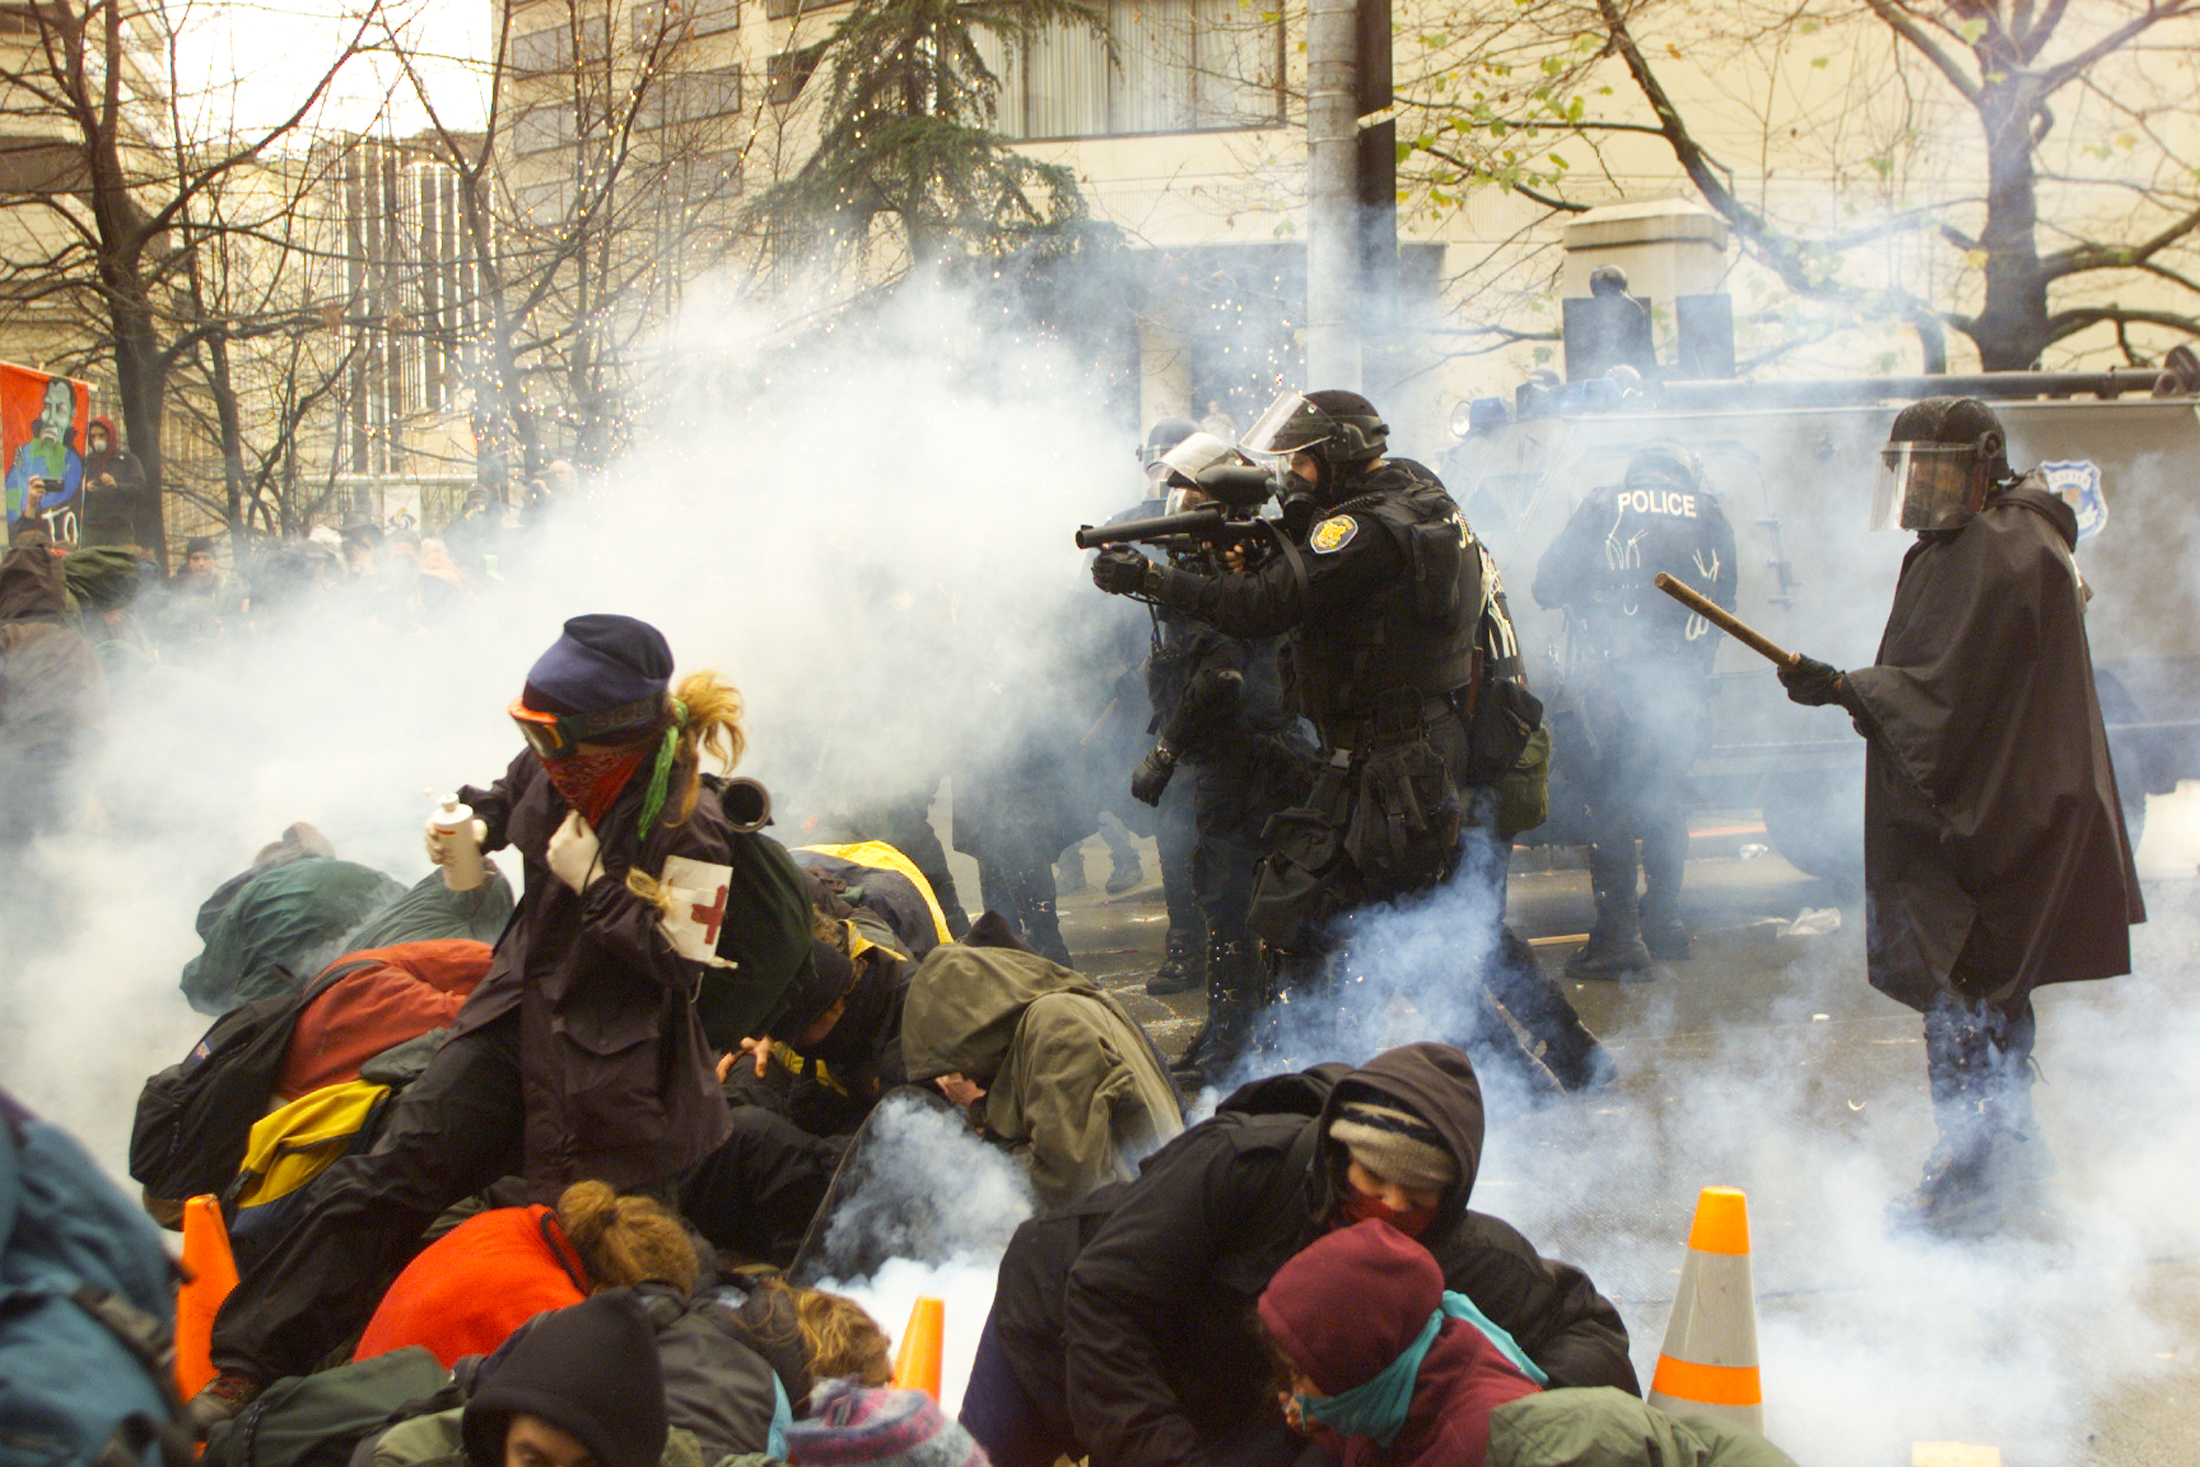 Seattle police fire teargas and pellets at protesters outside the World Trade Organization conference in Seattle, Washington on November 30, 1999.